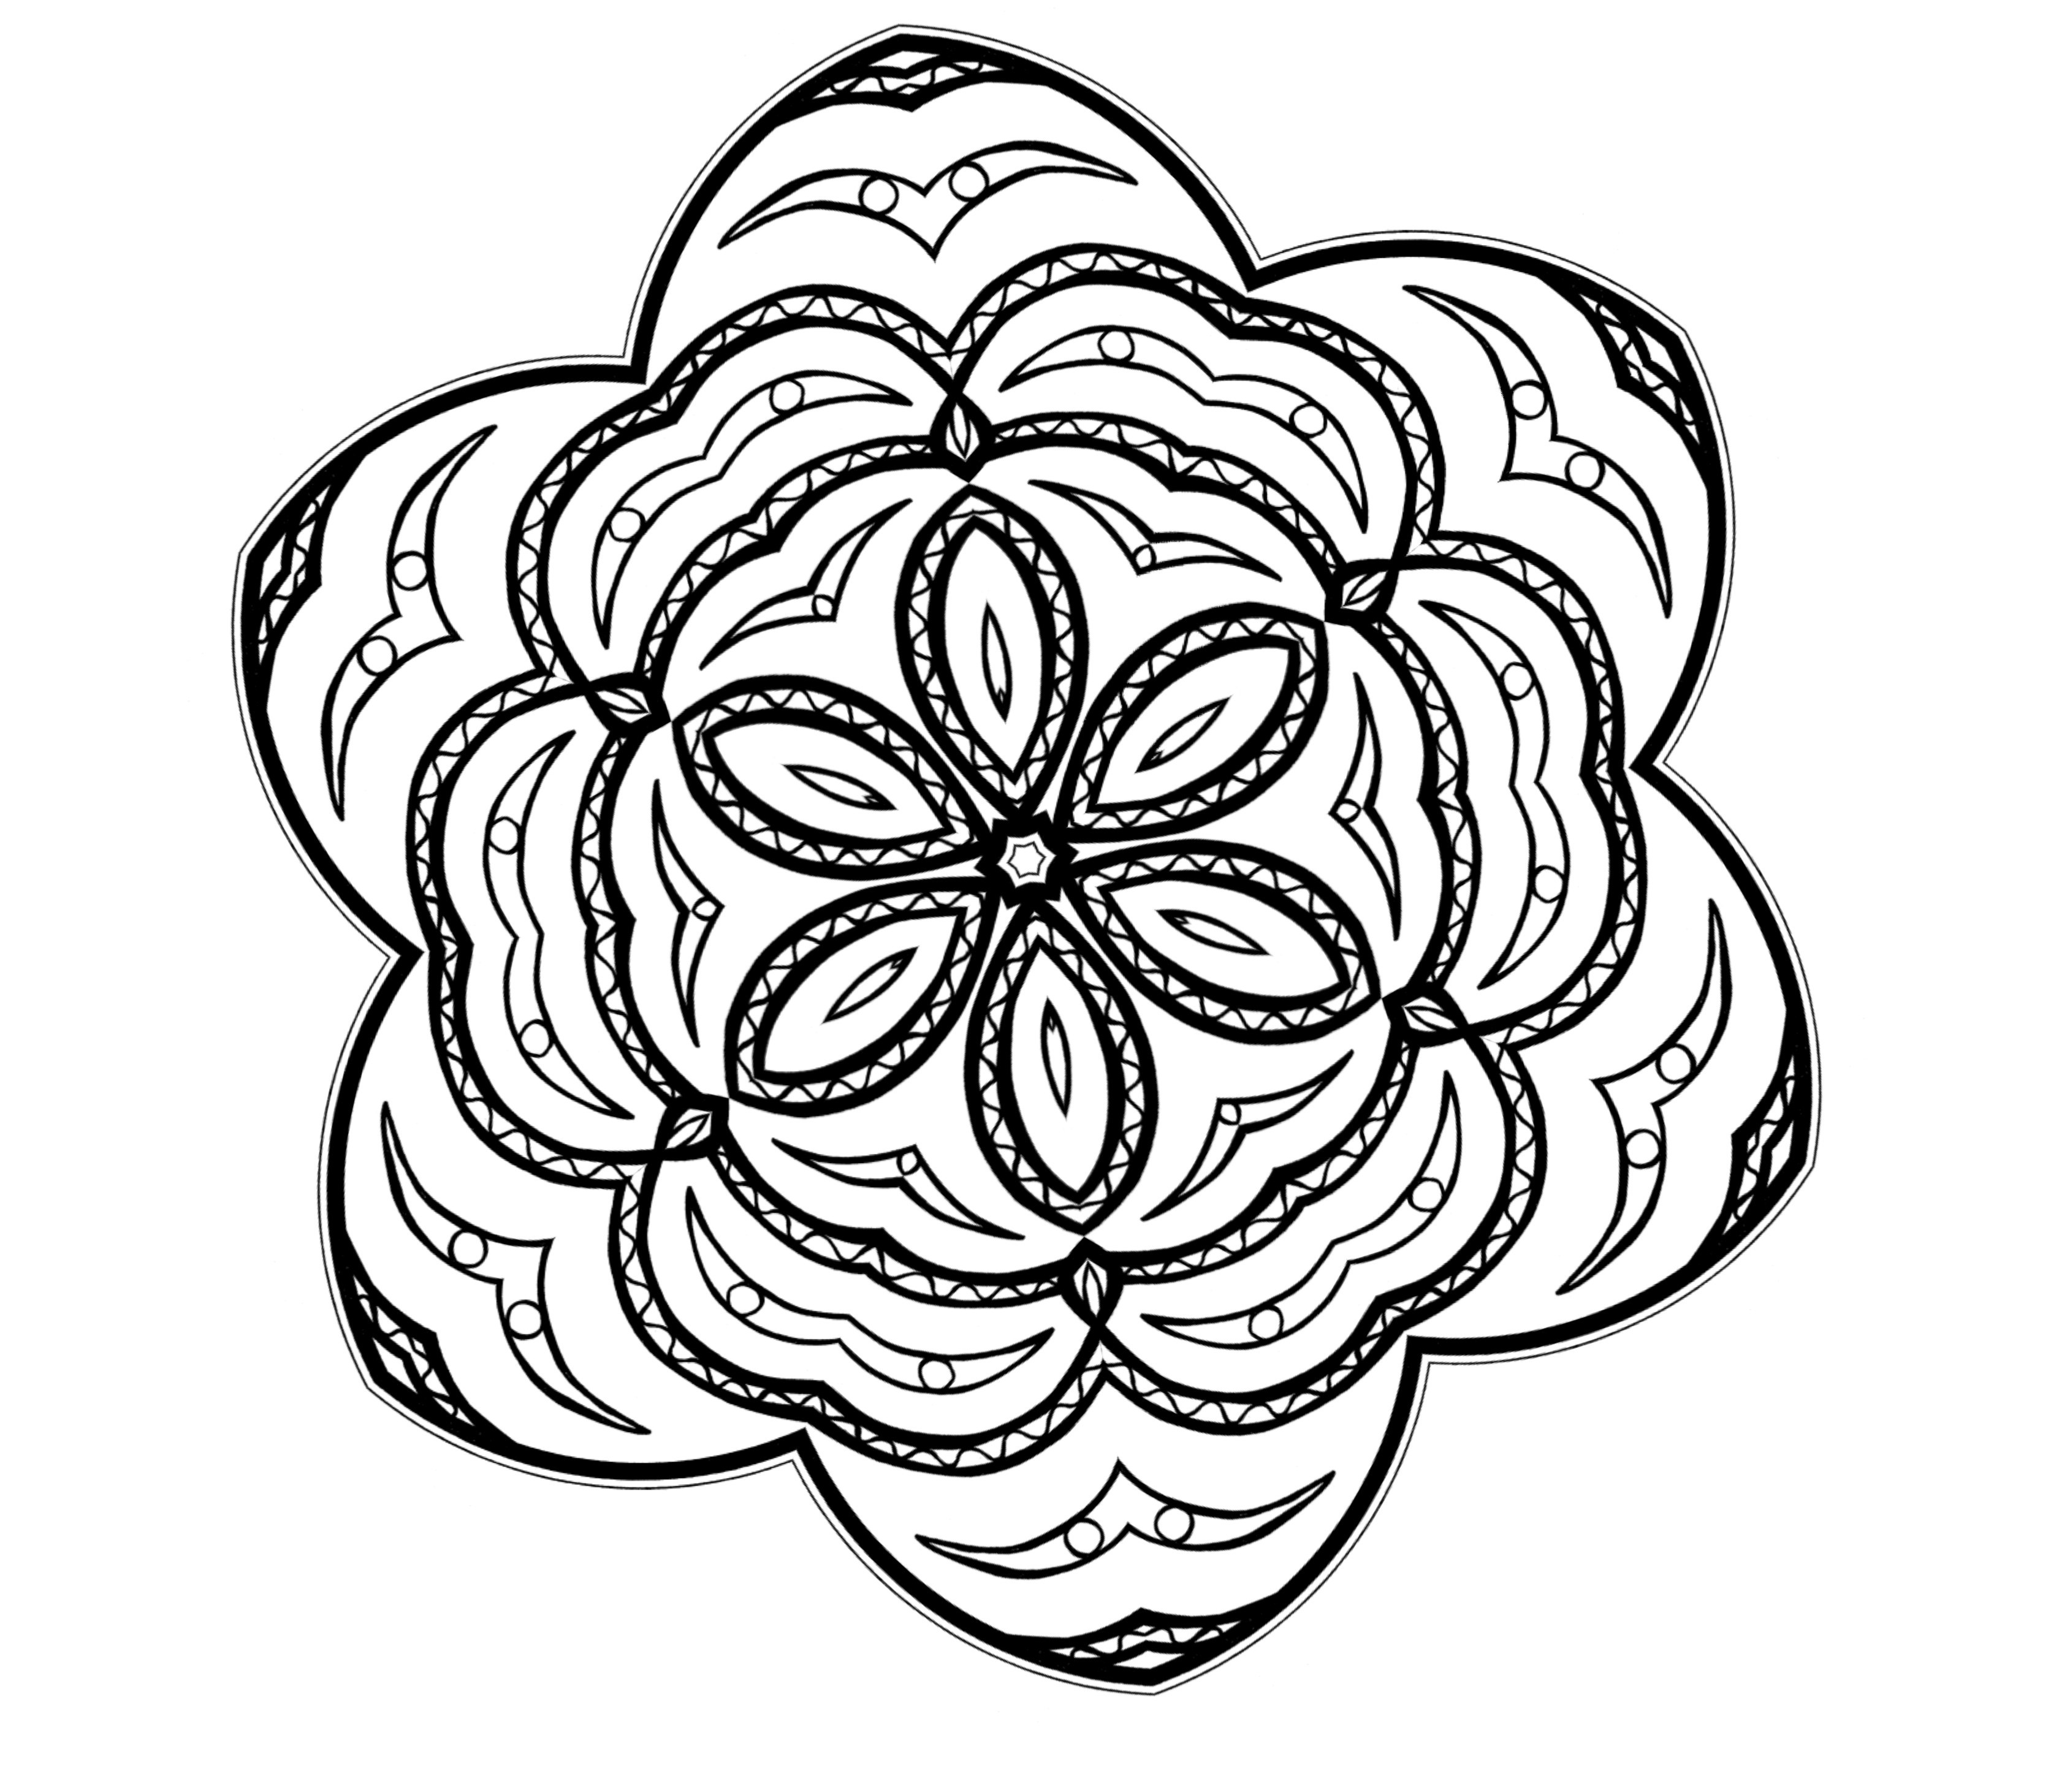 free coloring pages with designs free printable geometric coloring pages for adults designs with pages coloring free